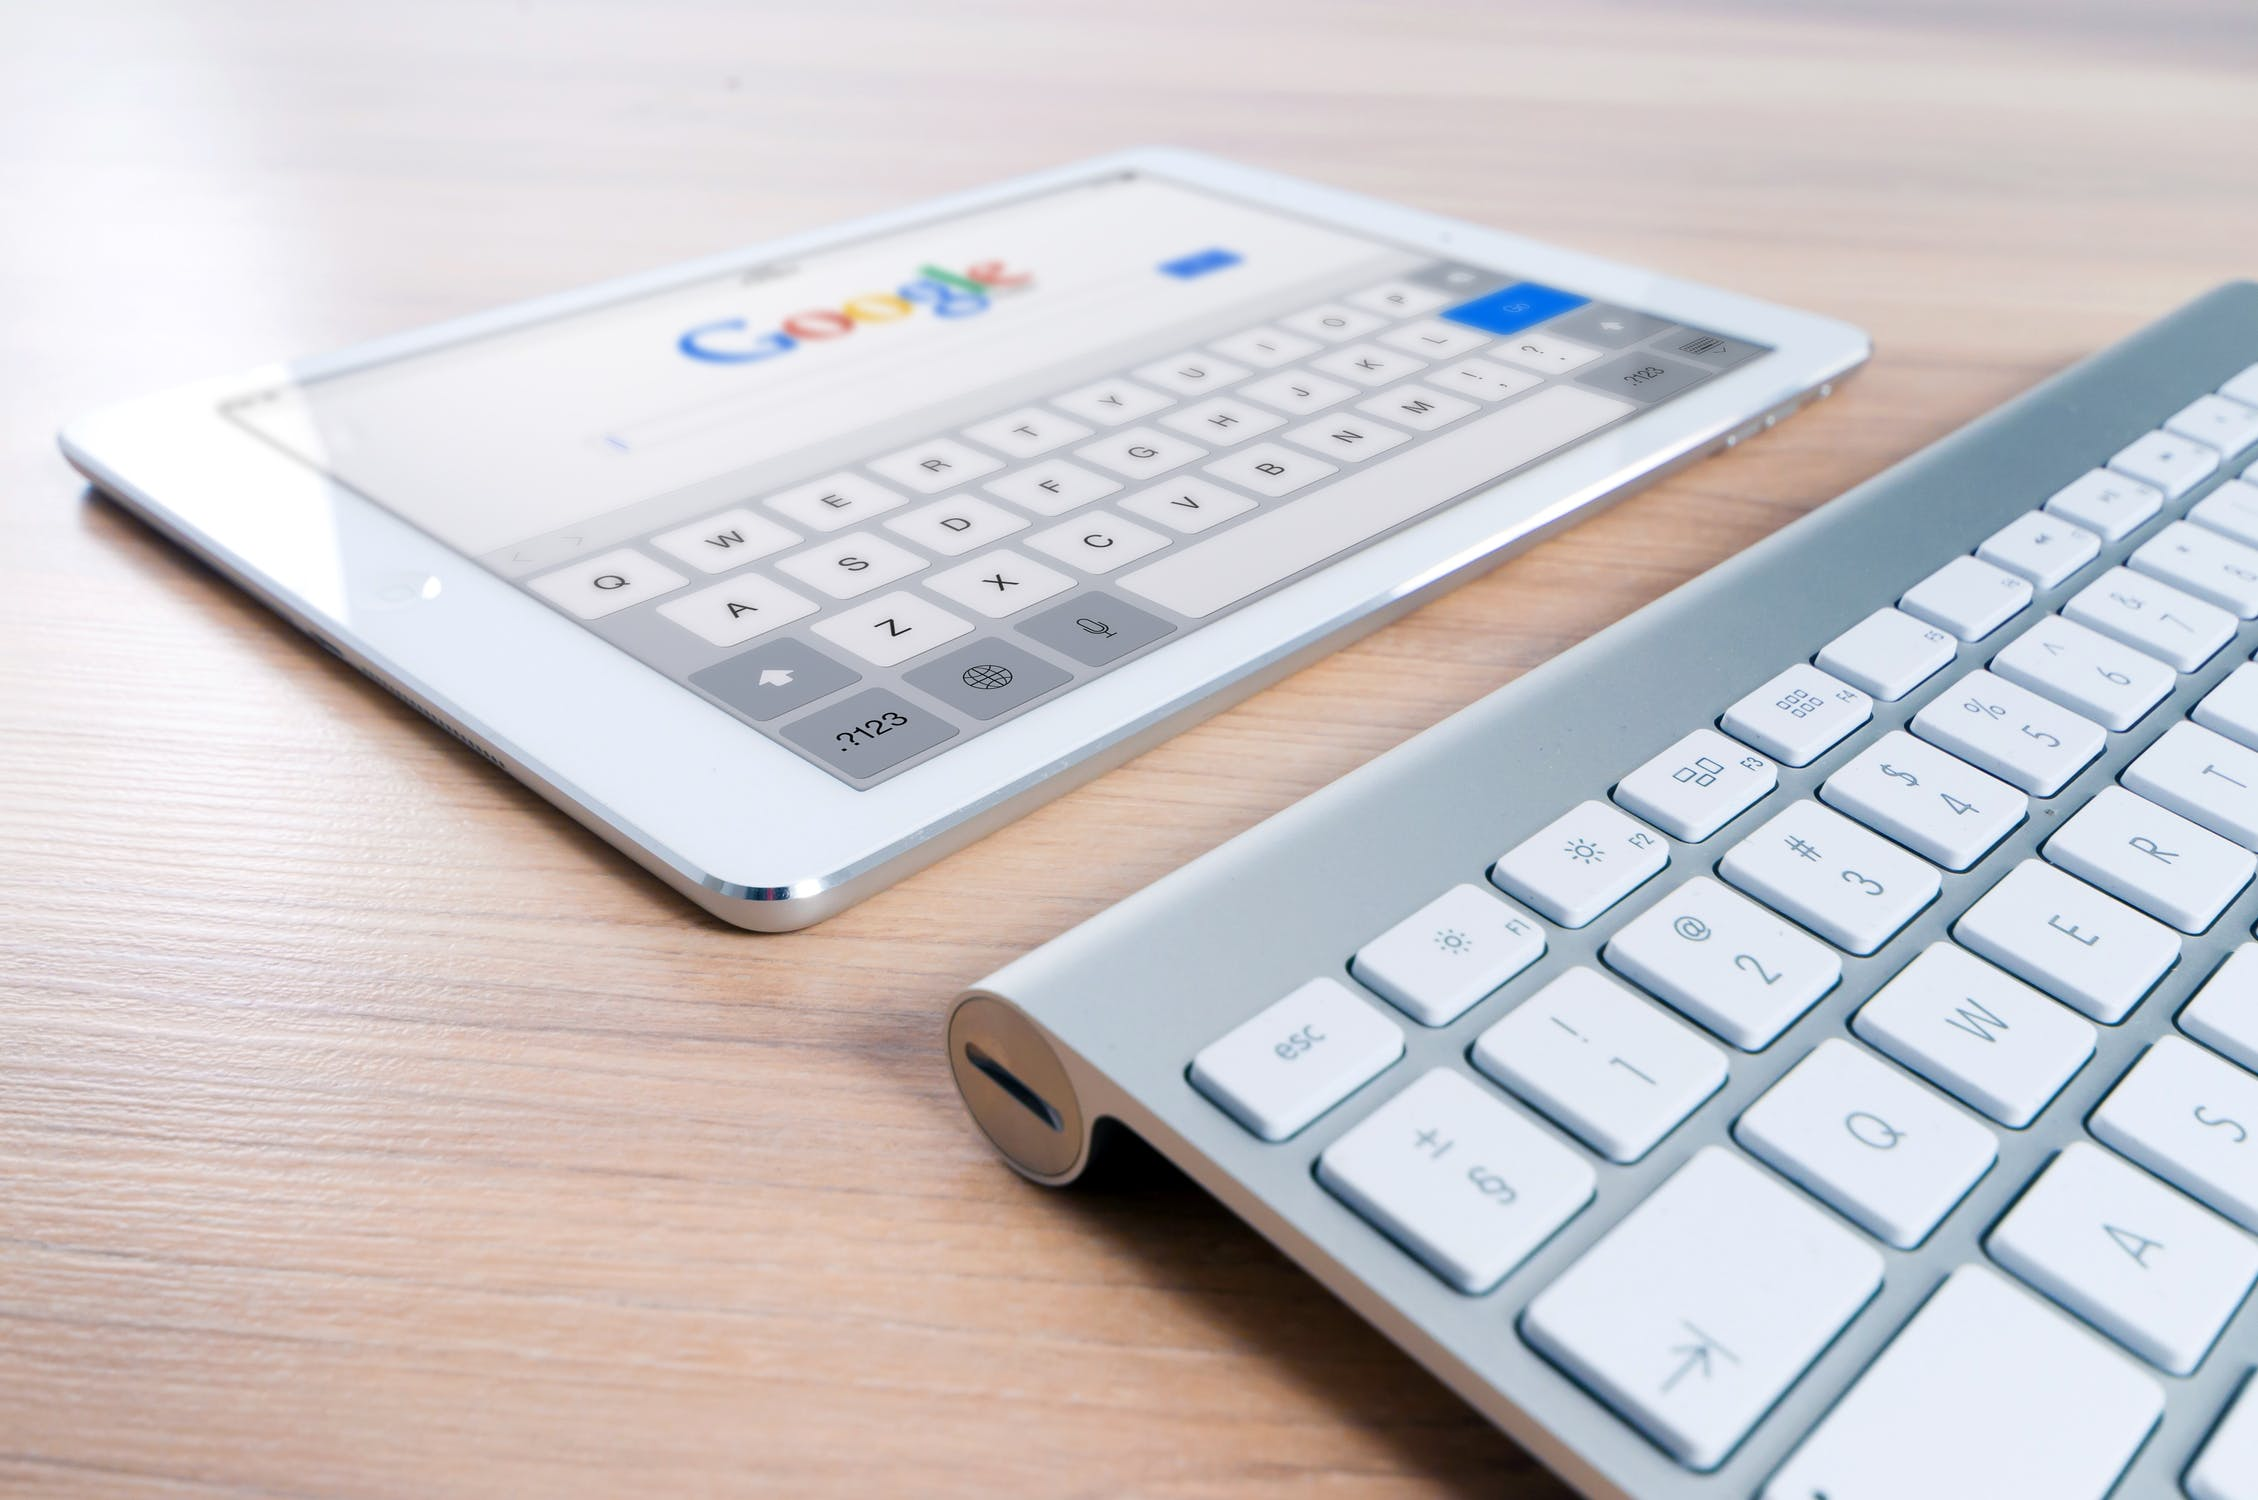 A silver iPad on a wooden surface, showing Google's search engine page.